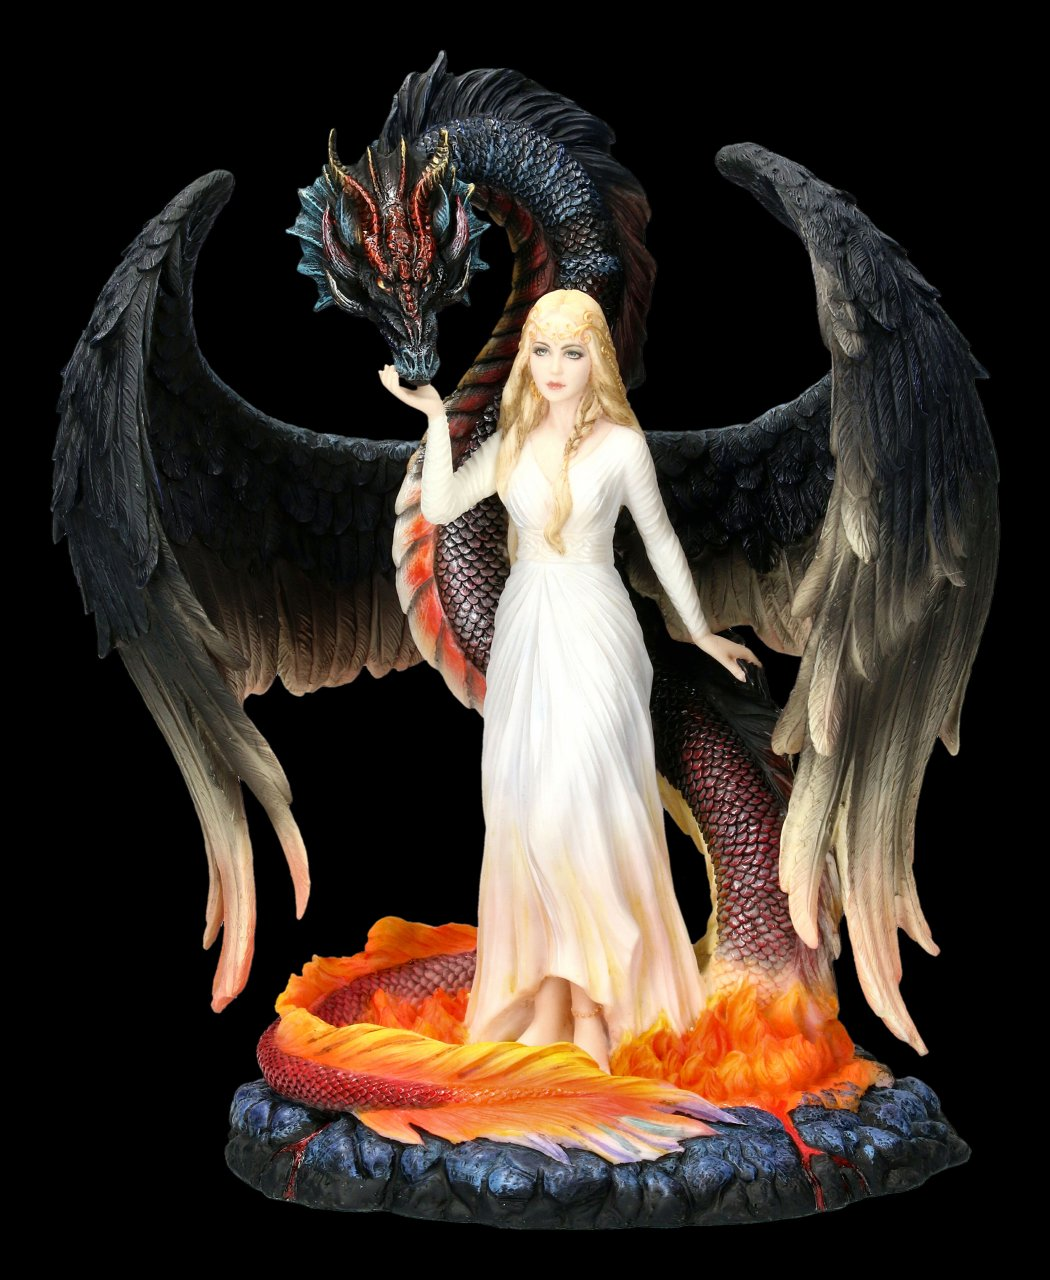 Dragon Figurine with Virgin - Born of the Flames